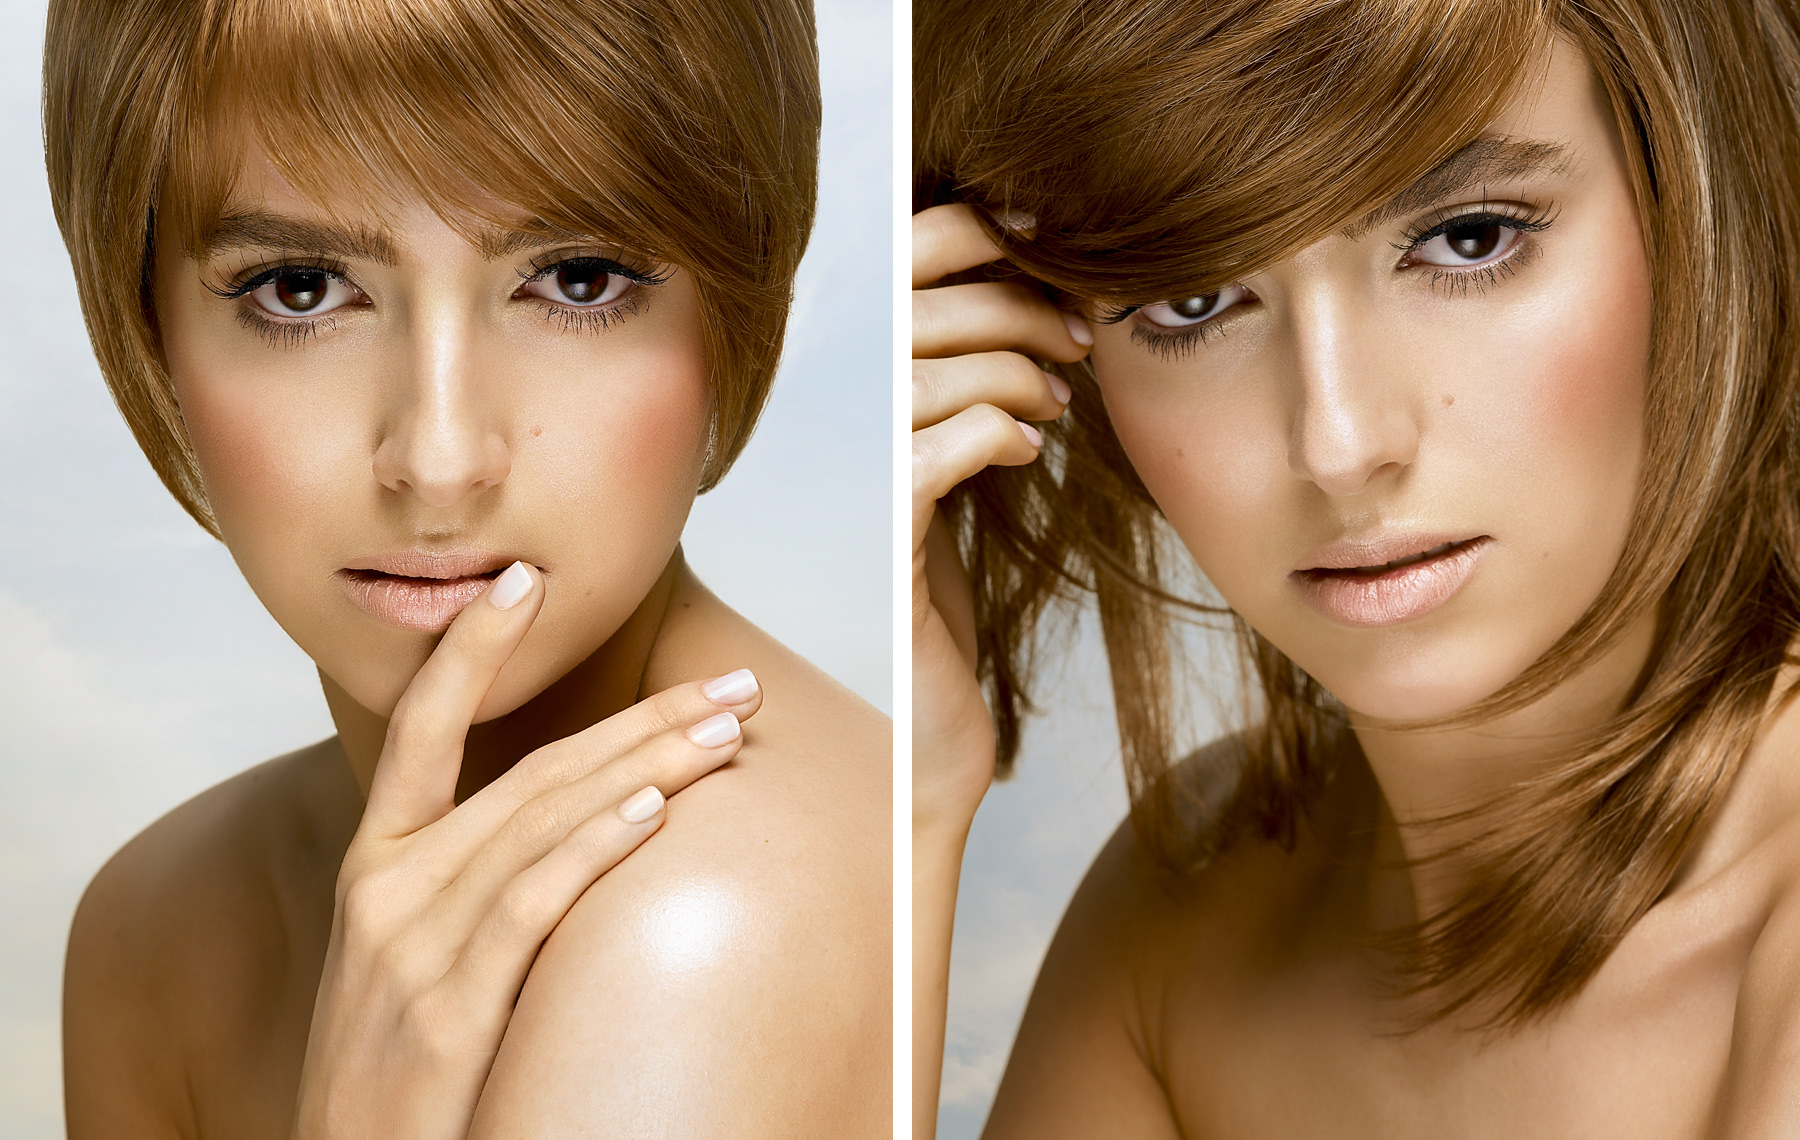 beauty makeup cosmetics photography by Vancouver beauty photographer Waldy Martens